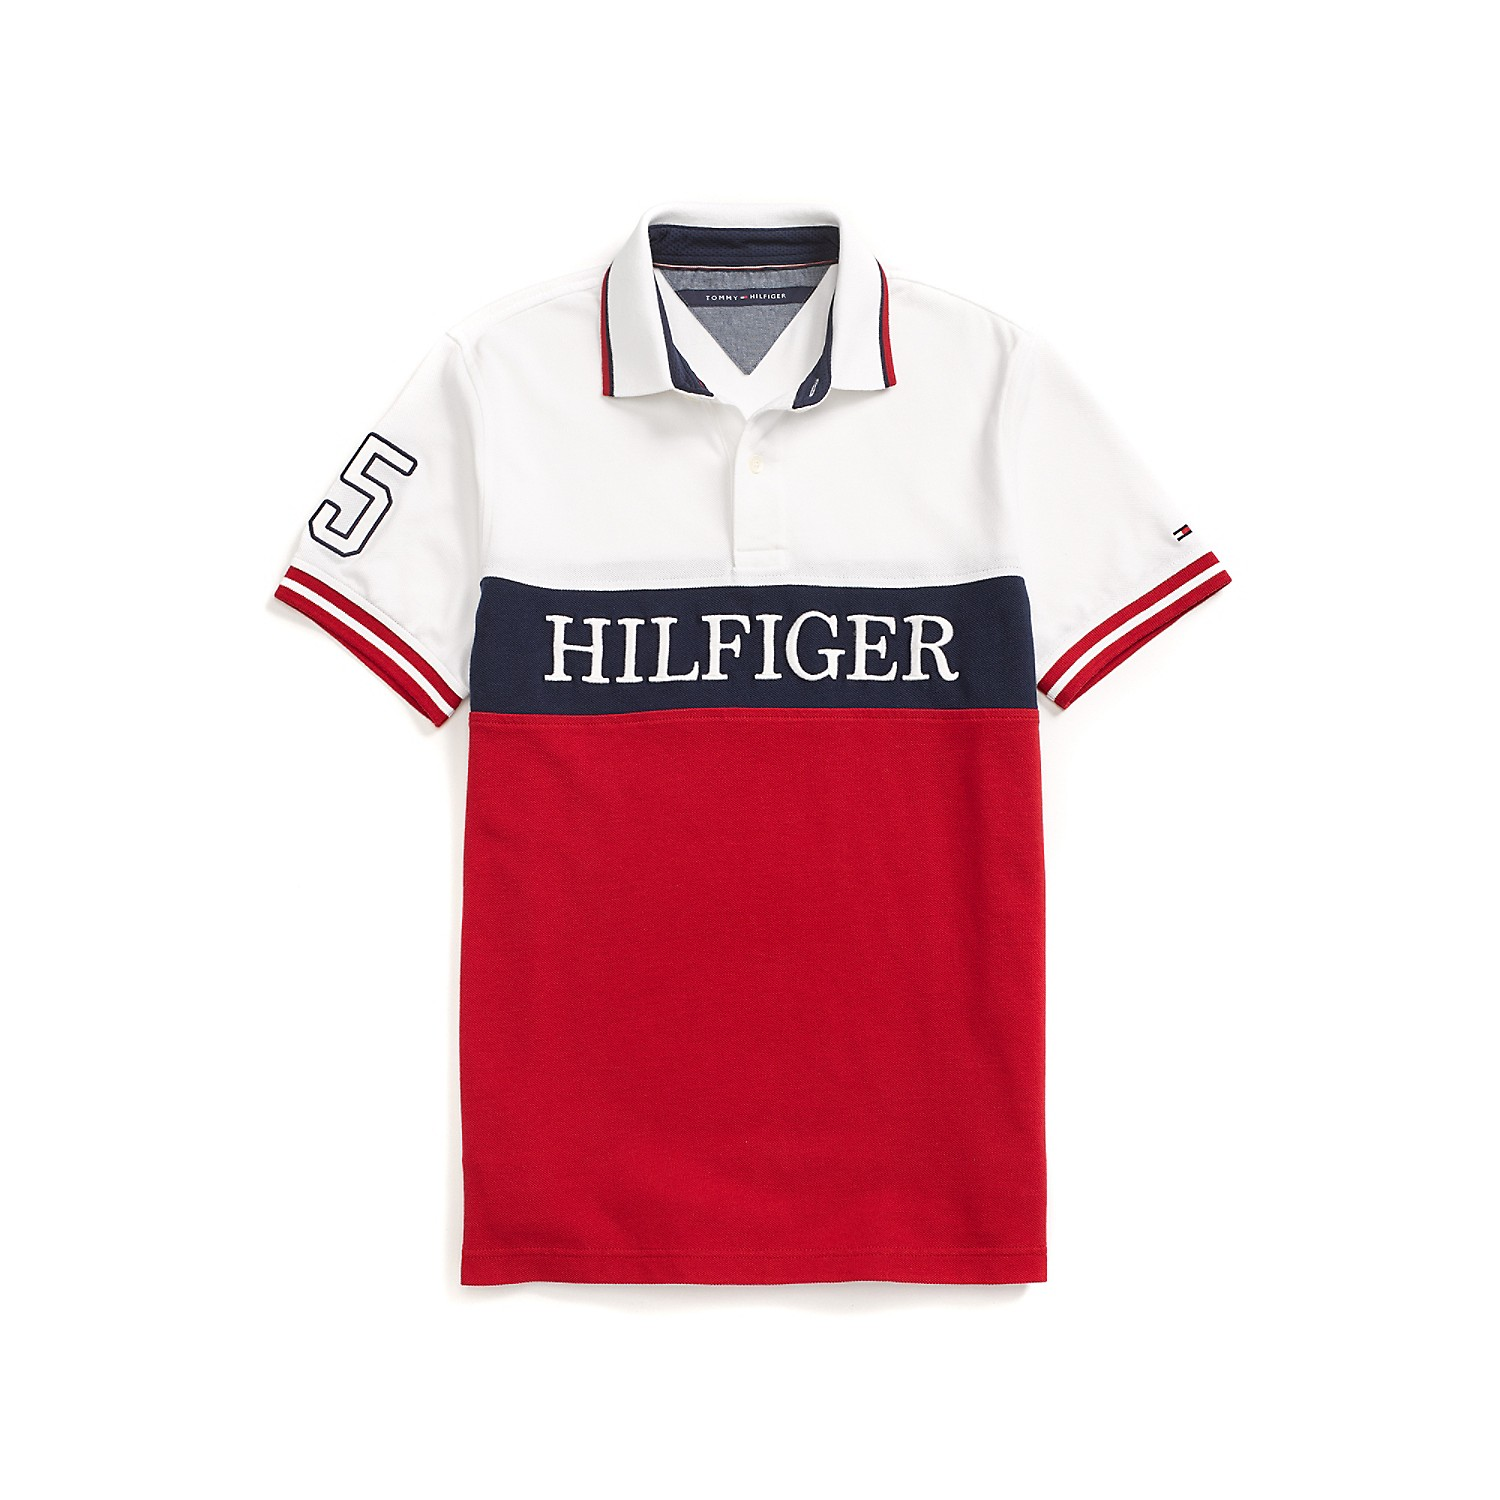 a47ee823673 Tipo Polo Tommy Hilfiger - Madeira ropa importada